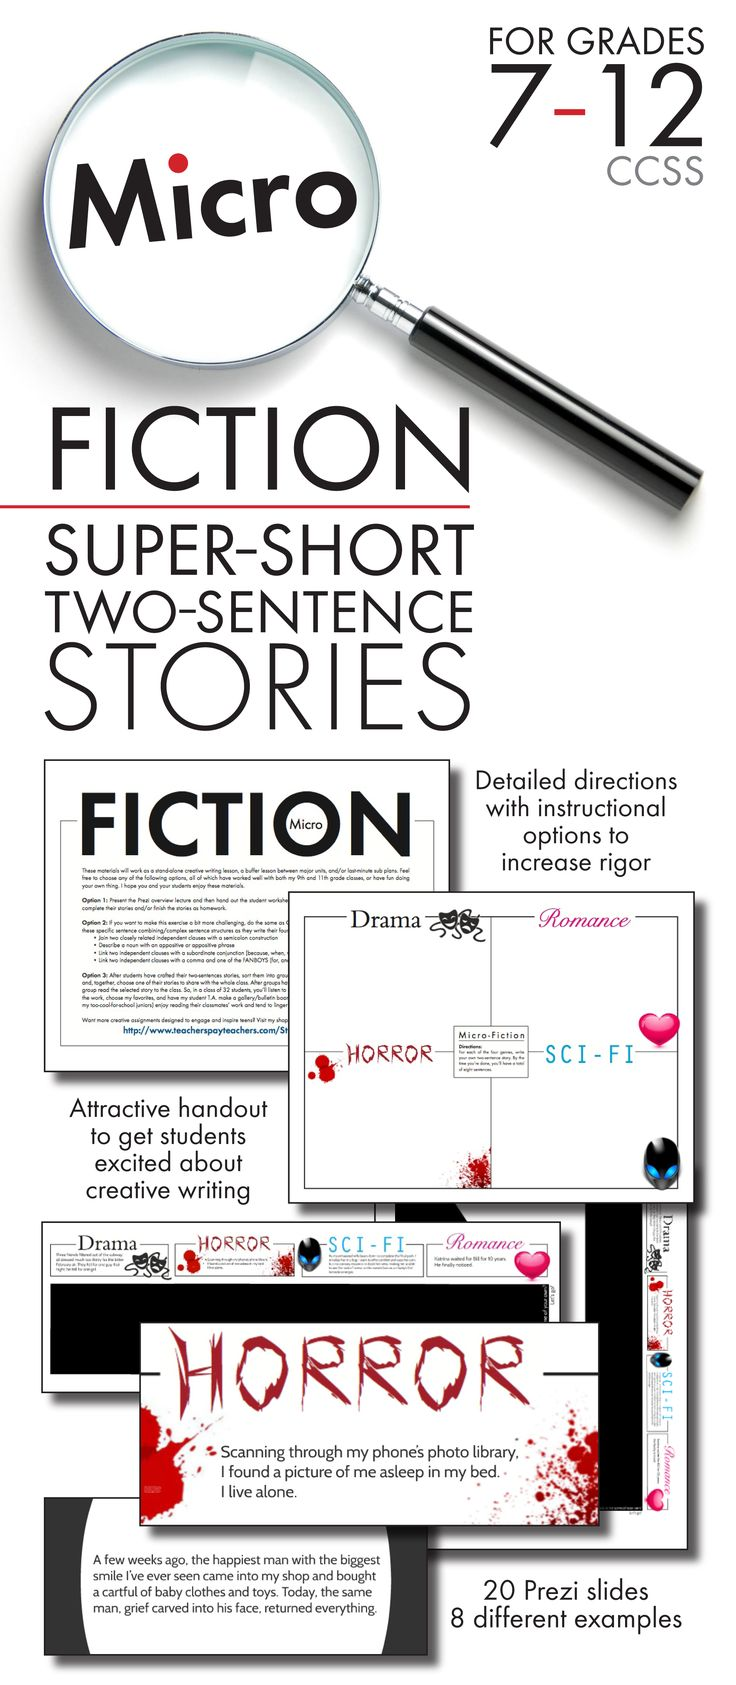 Micro Fiction – Flash Fiction – Two-Sentence Stories – Sudden Fiction – Twitter Tales Whatever you want to call them, super-short stories are a super-fun way to spend a single class period, as you introduce your secondary English classes to the idea that an entire story can exist within just two sentences.